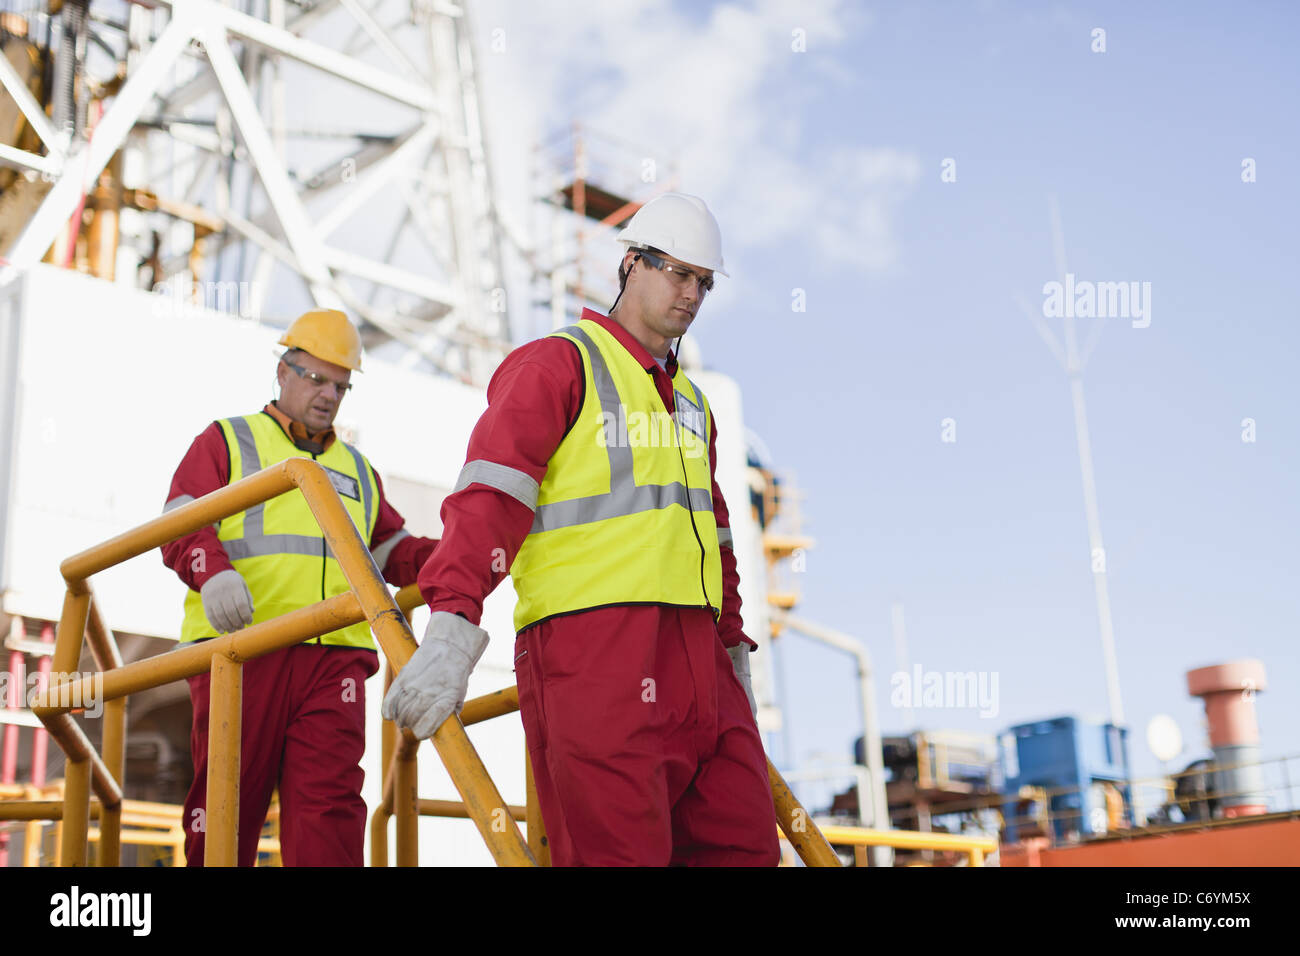 Workers walking on oil rig - Stock Image